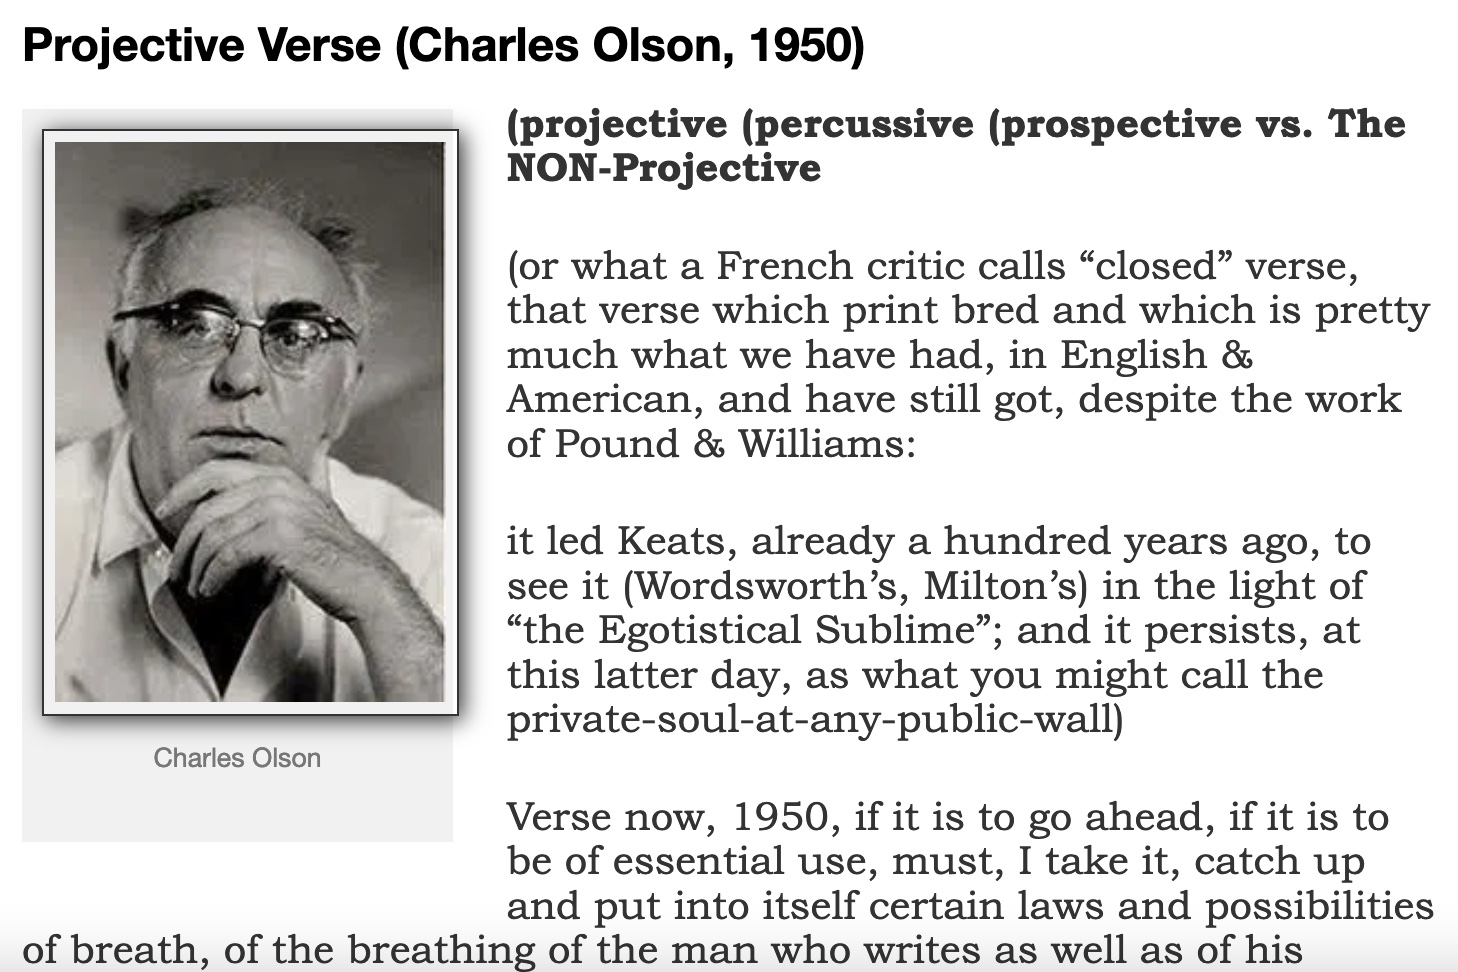 A Reading of Projective Verse